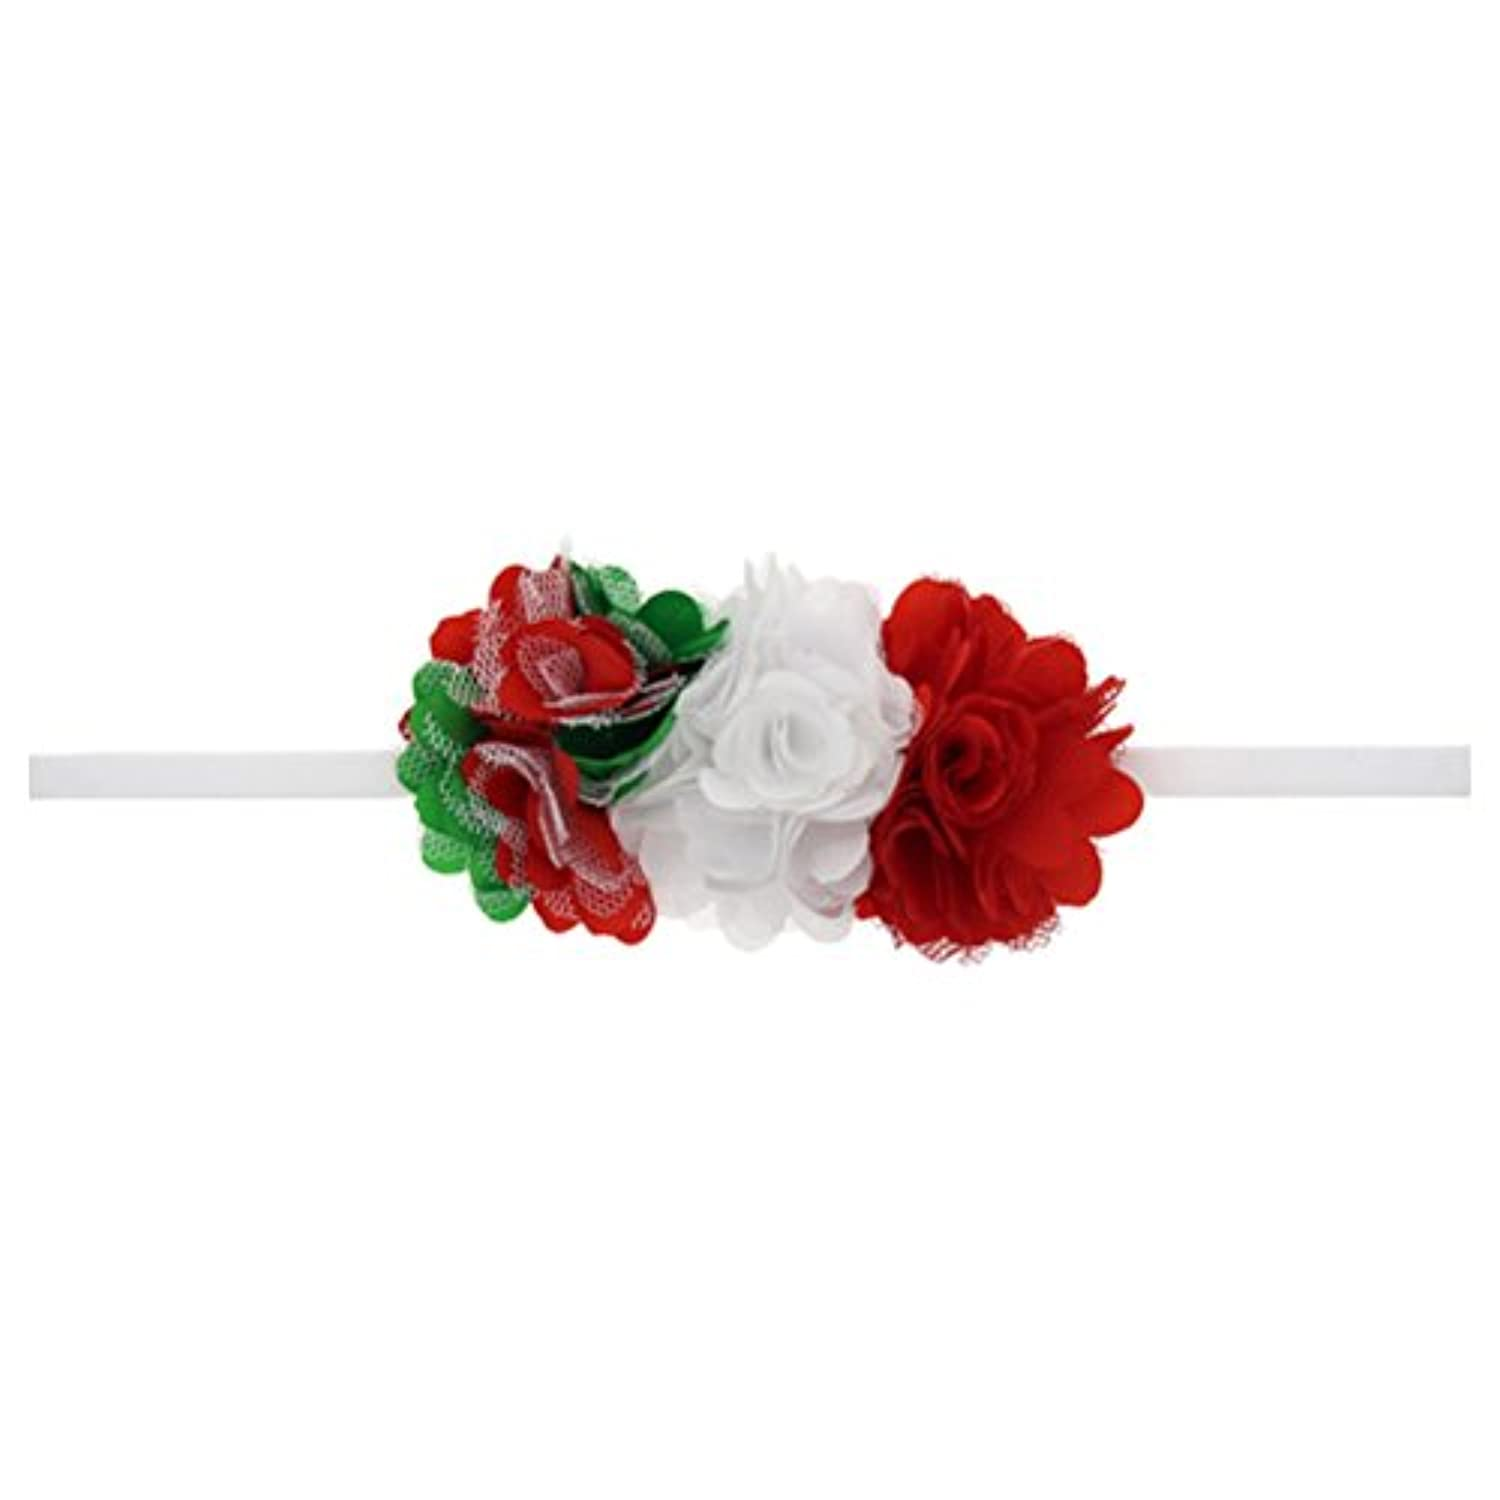 Zhhlinyuan ベビー小物 Kids Baby Girls Flower ヘアアクセサリ Toddler Christmas/Photography Pops/Costume/Party Lace Silk Flowers Headband Hairband